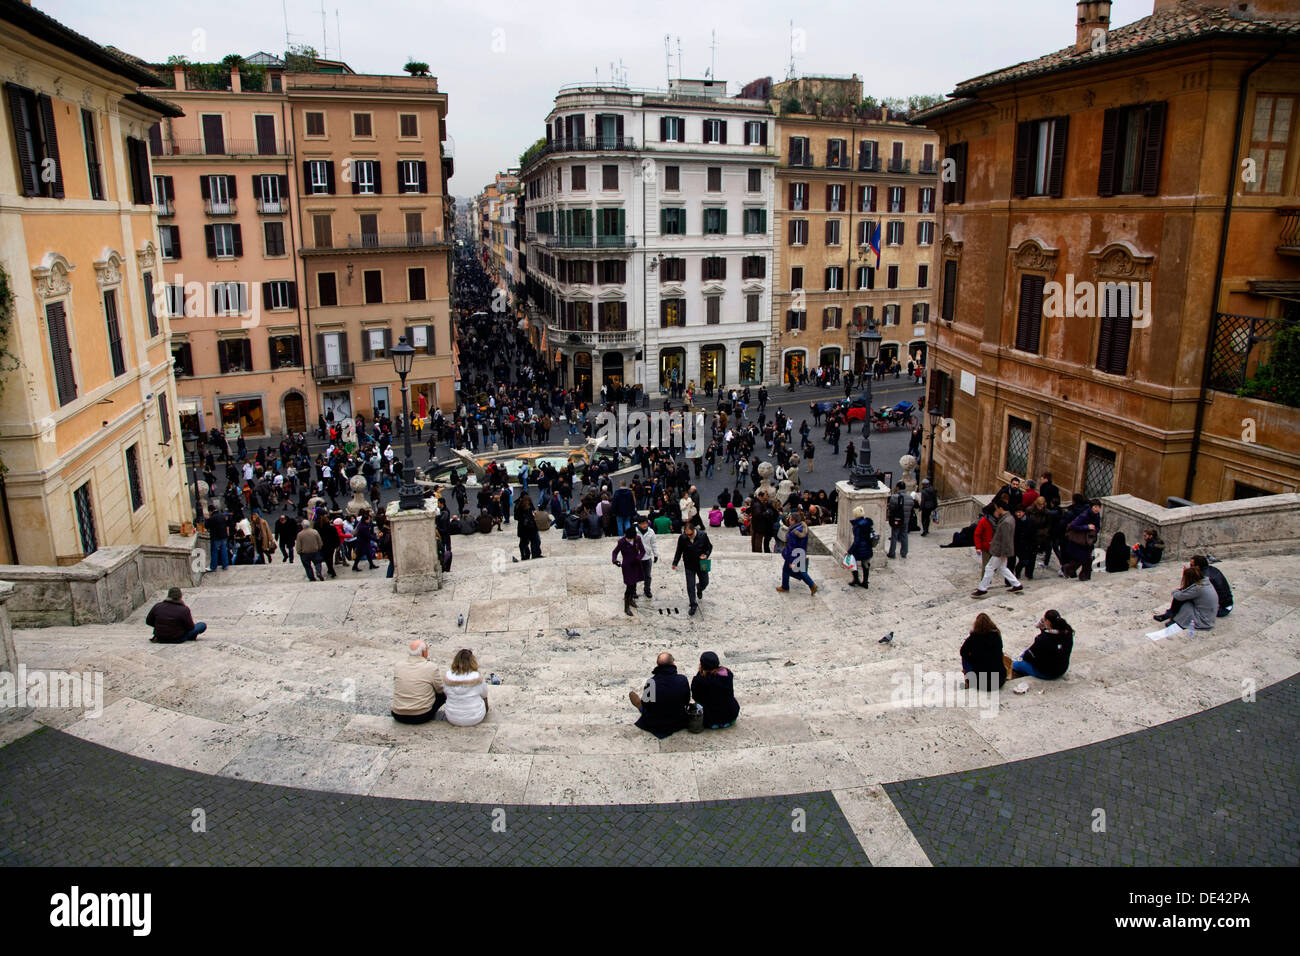 The Spanish Steps and Piazza di Espagna in Rome, Italy. - Stock Image